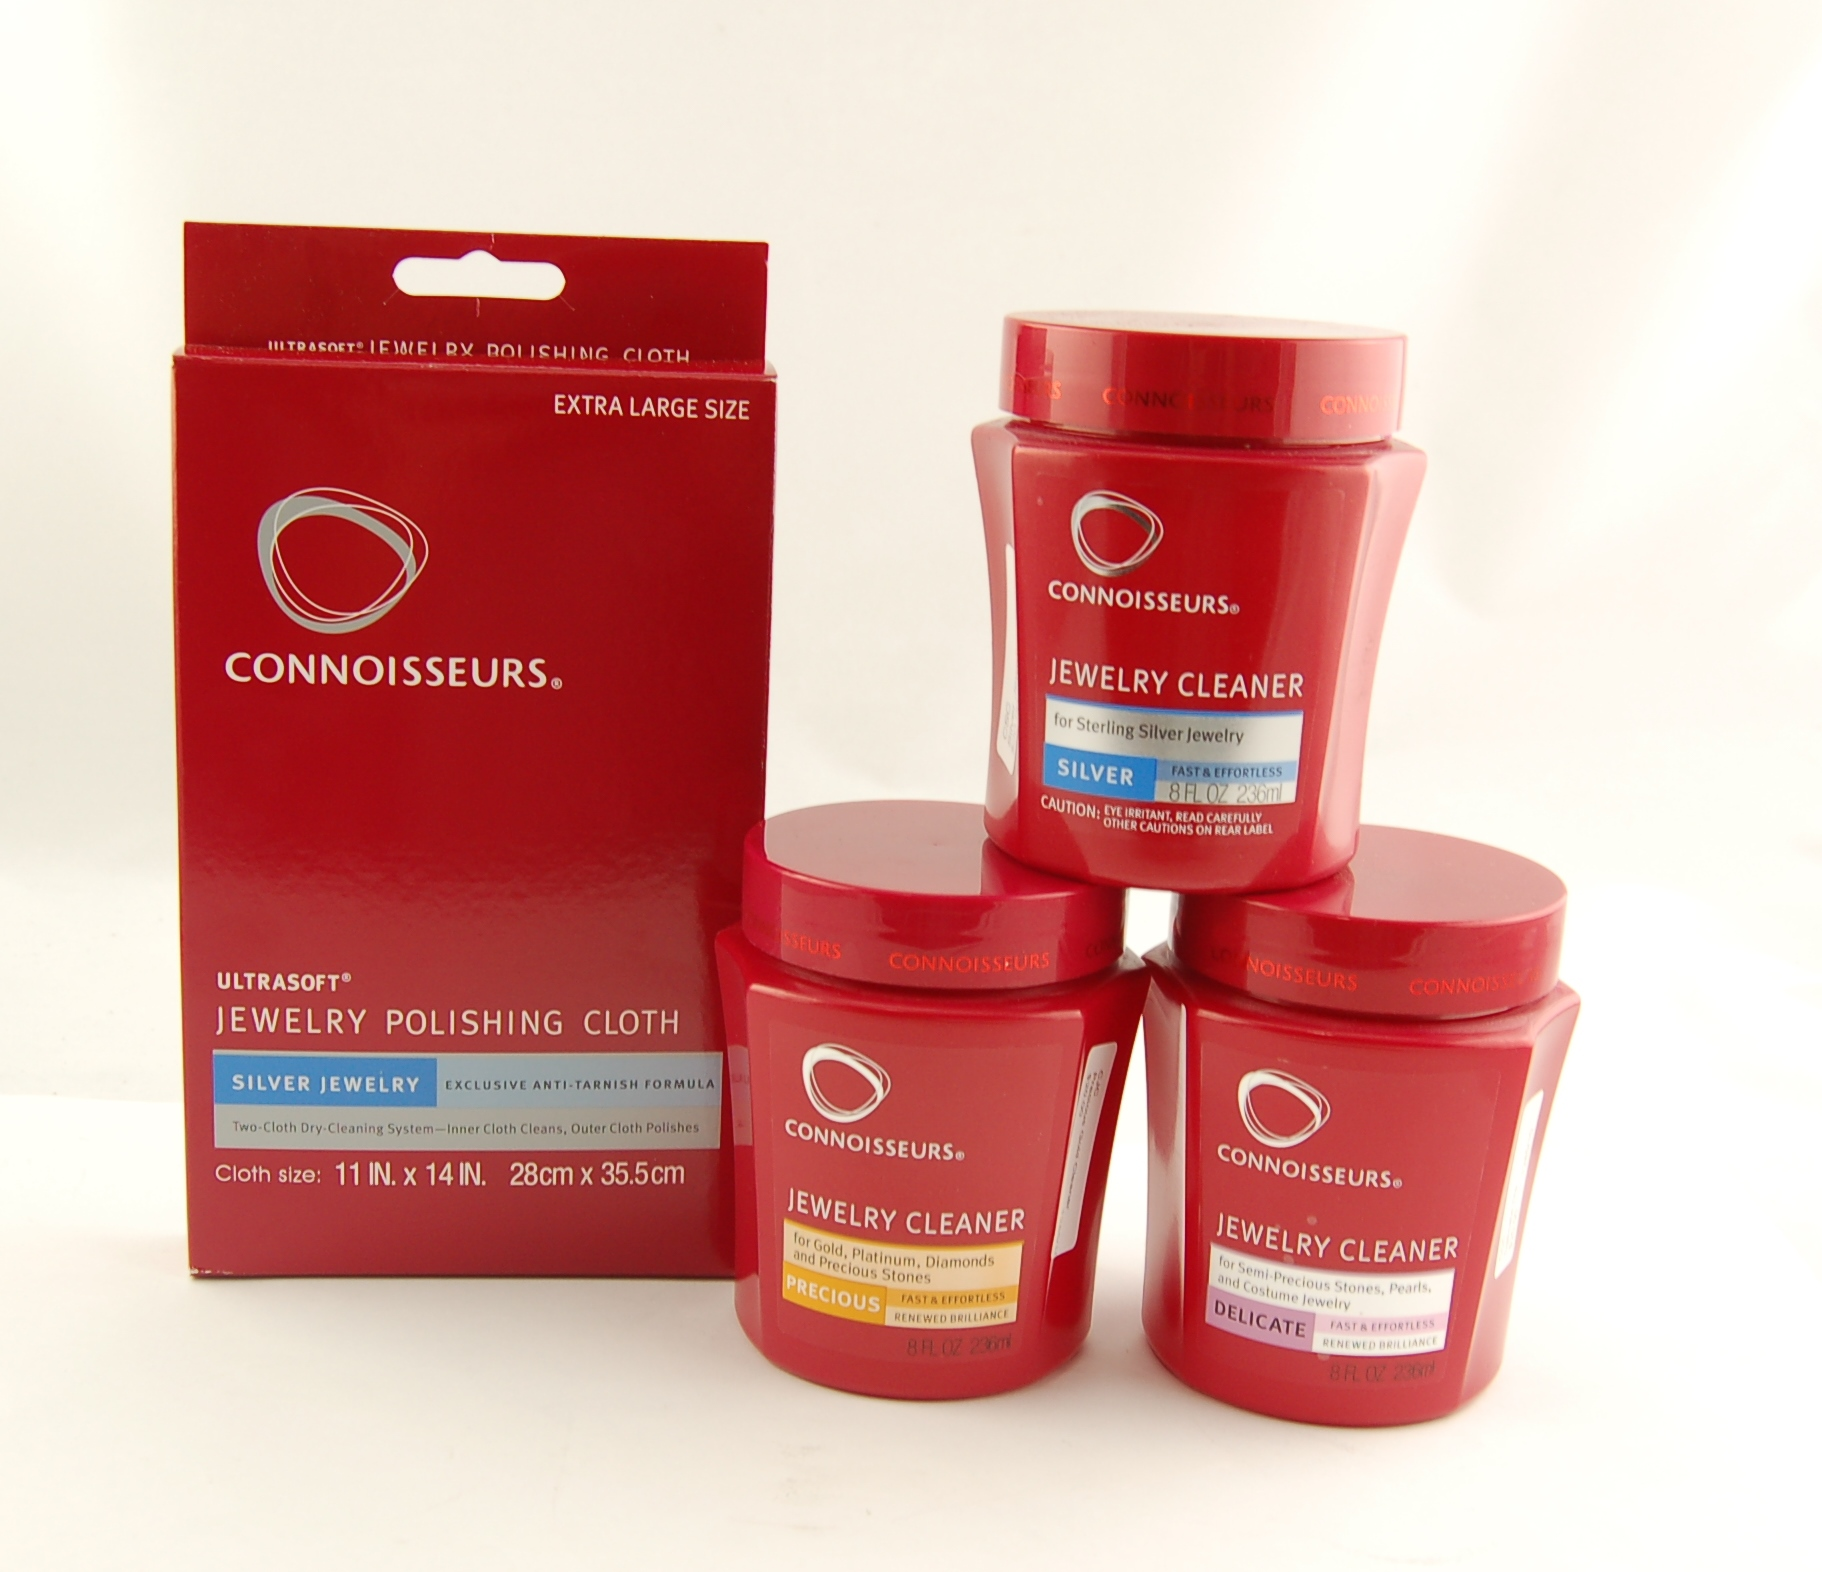 FEATURED PRODUCT: Connoisseurs Jewellery Cleaners